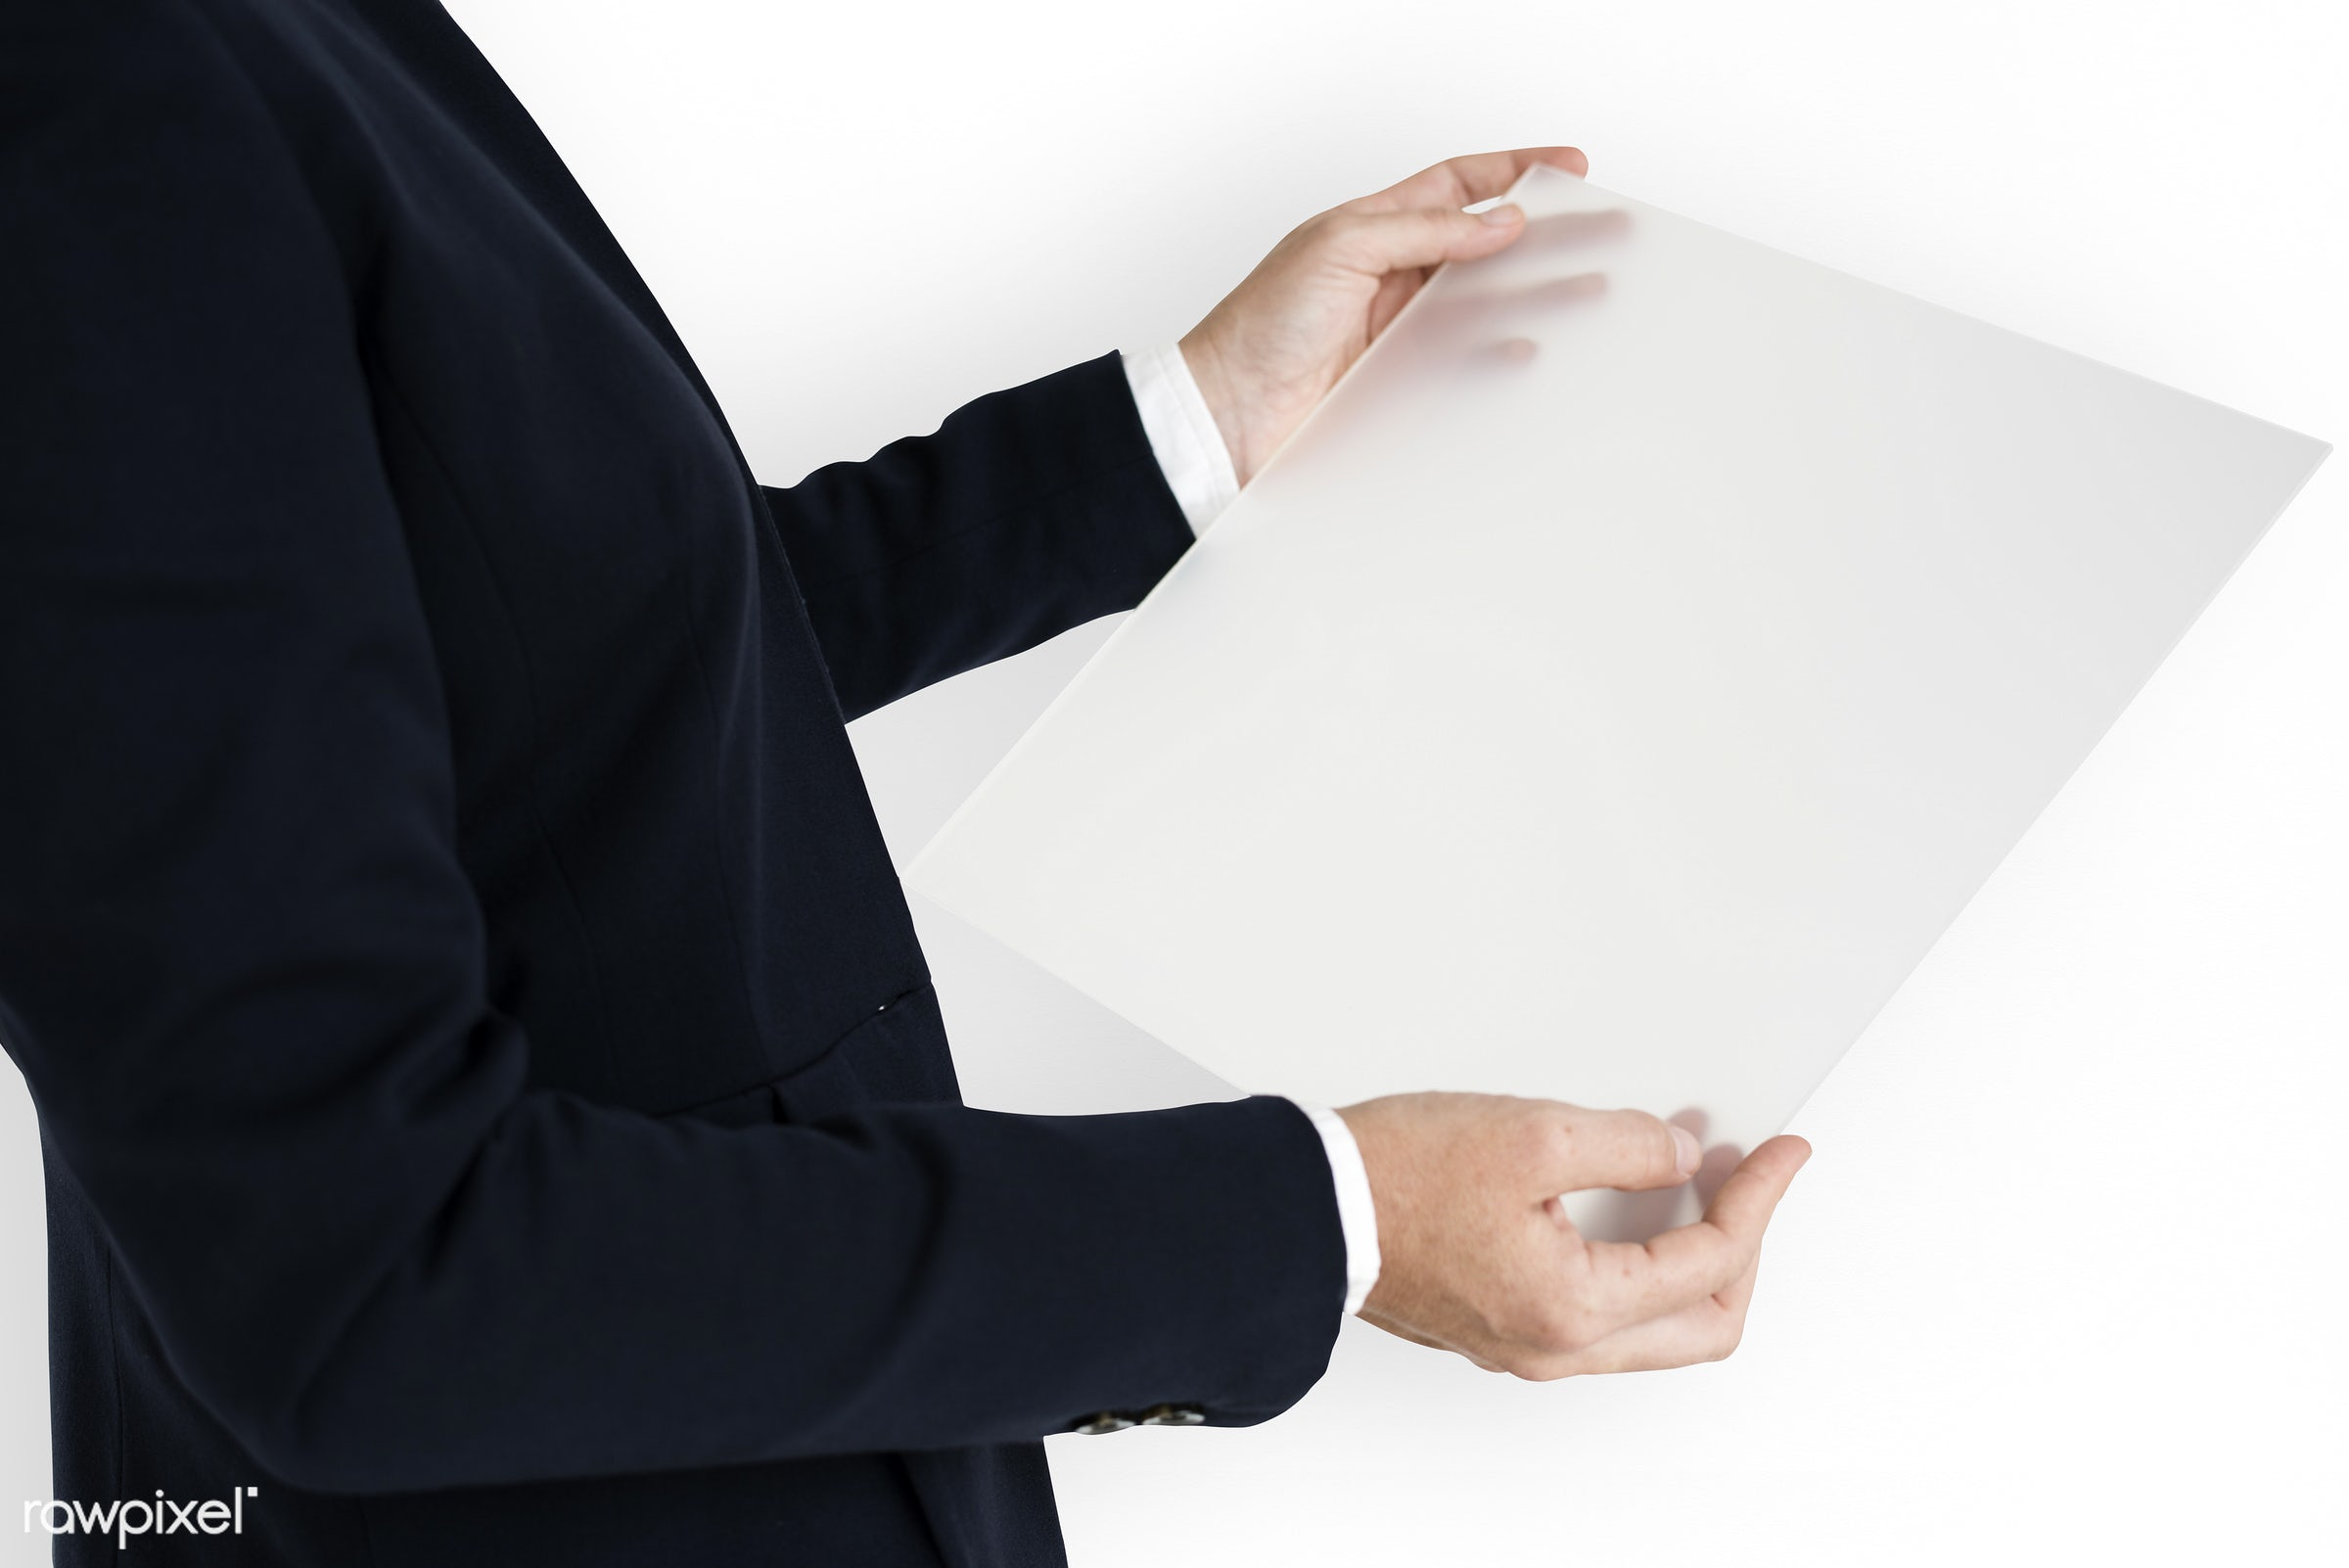 studio, expression, person, holding, business wear, paper, isolated on white, show, briefing, people, business, document,...